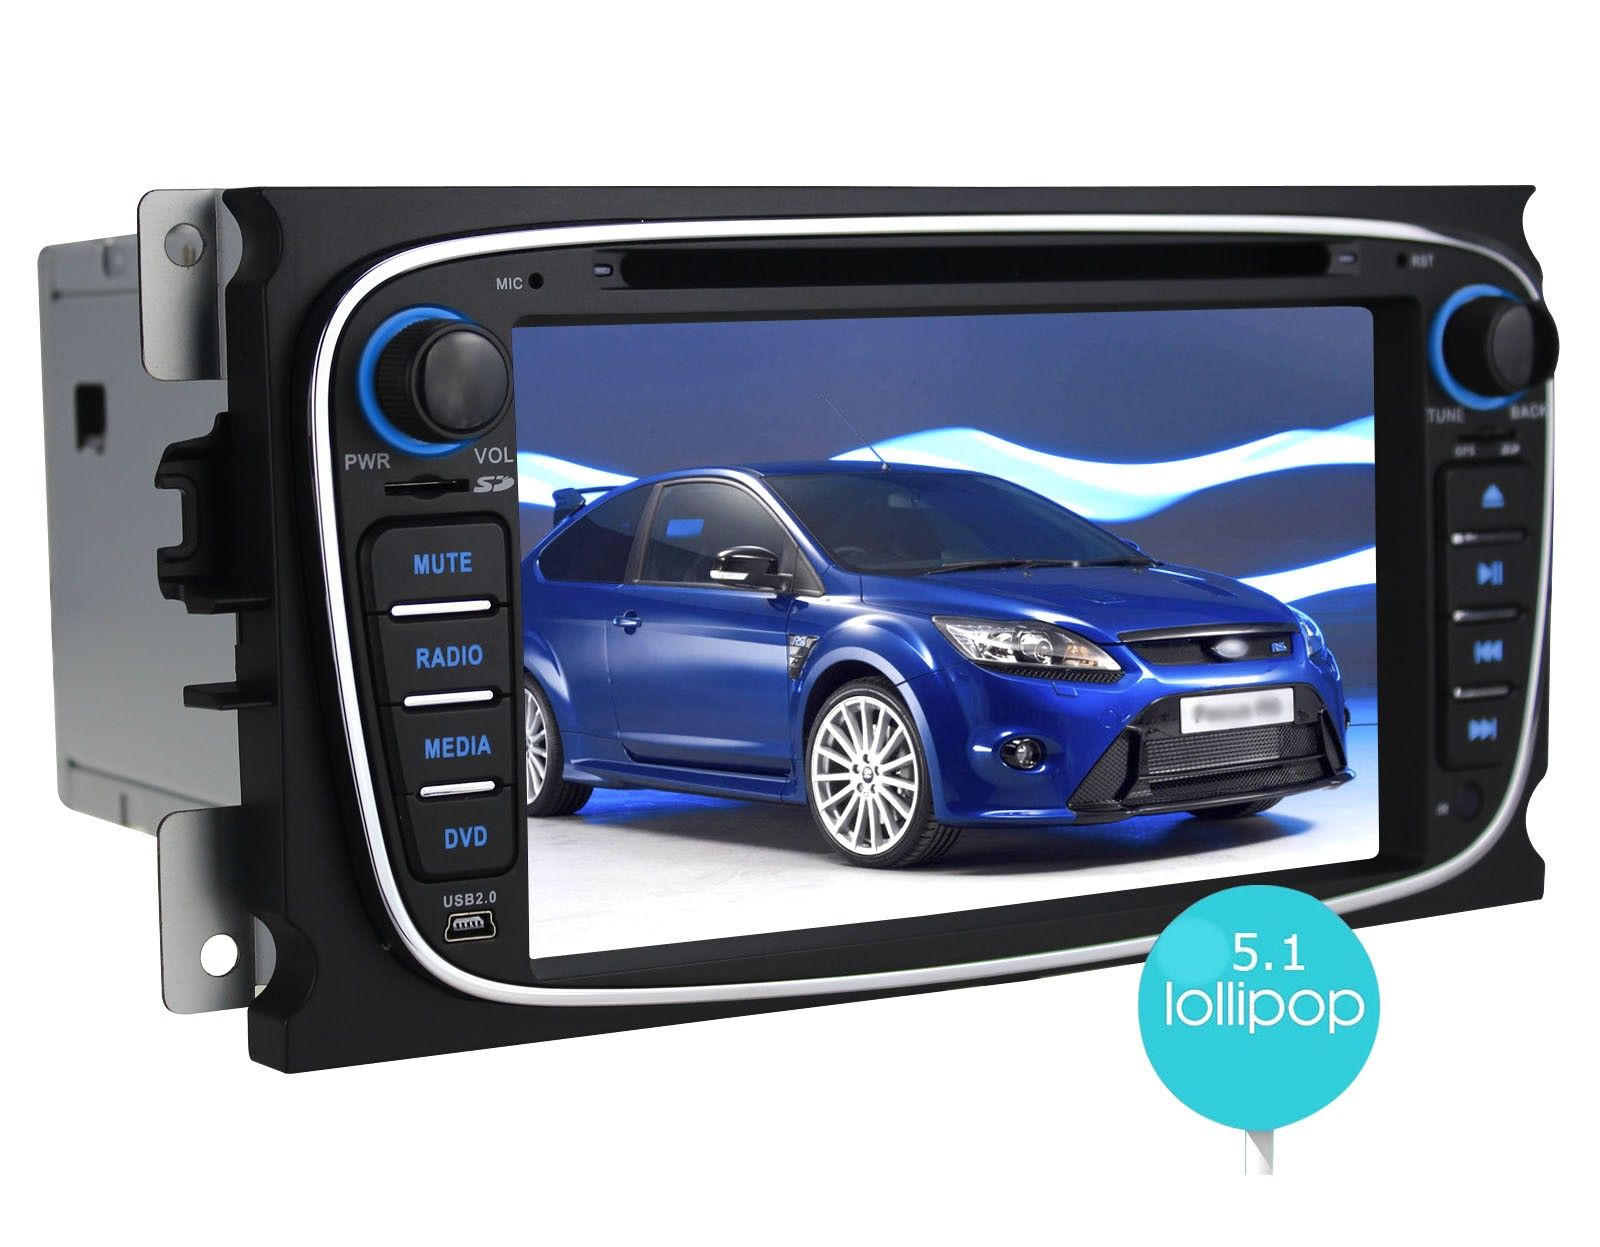 Joying newest android 5 1 1 lollipop autoradio car stereo 7 inch quad core hd 1024 600 resolution black head unit radio oem gps navigation system support